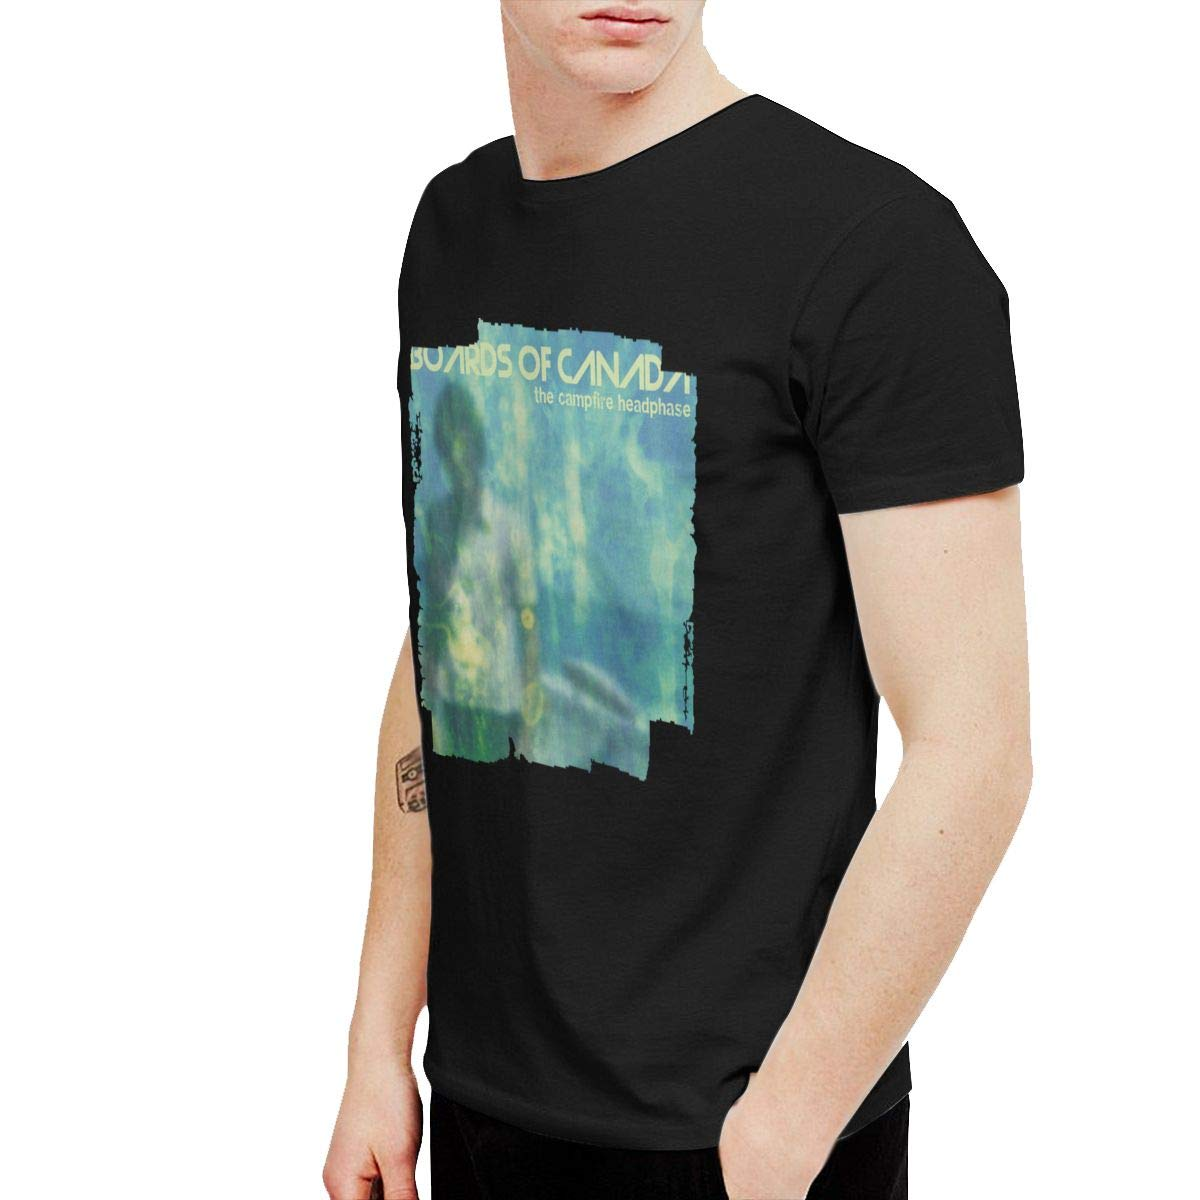 KaceO Mens Boards of Canada The Campfire Headphase Tshirts Black